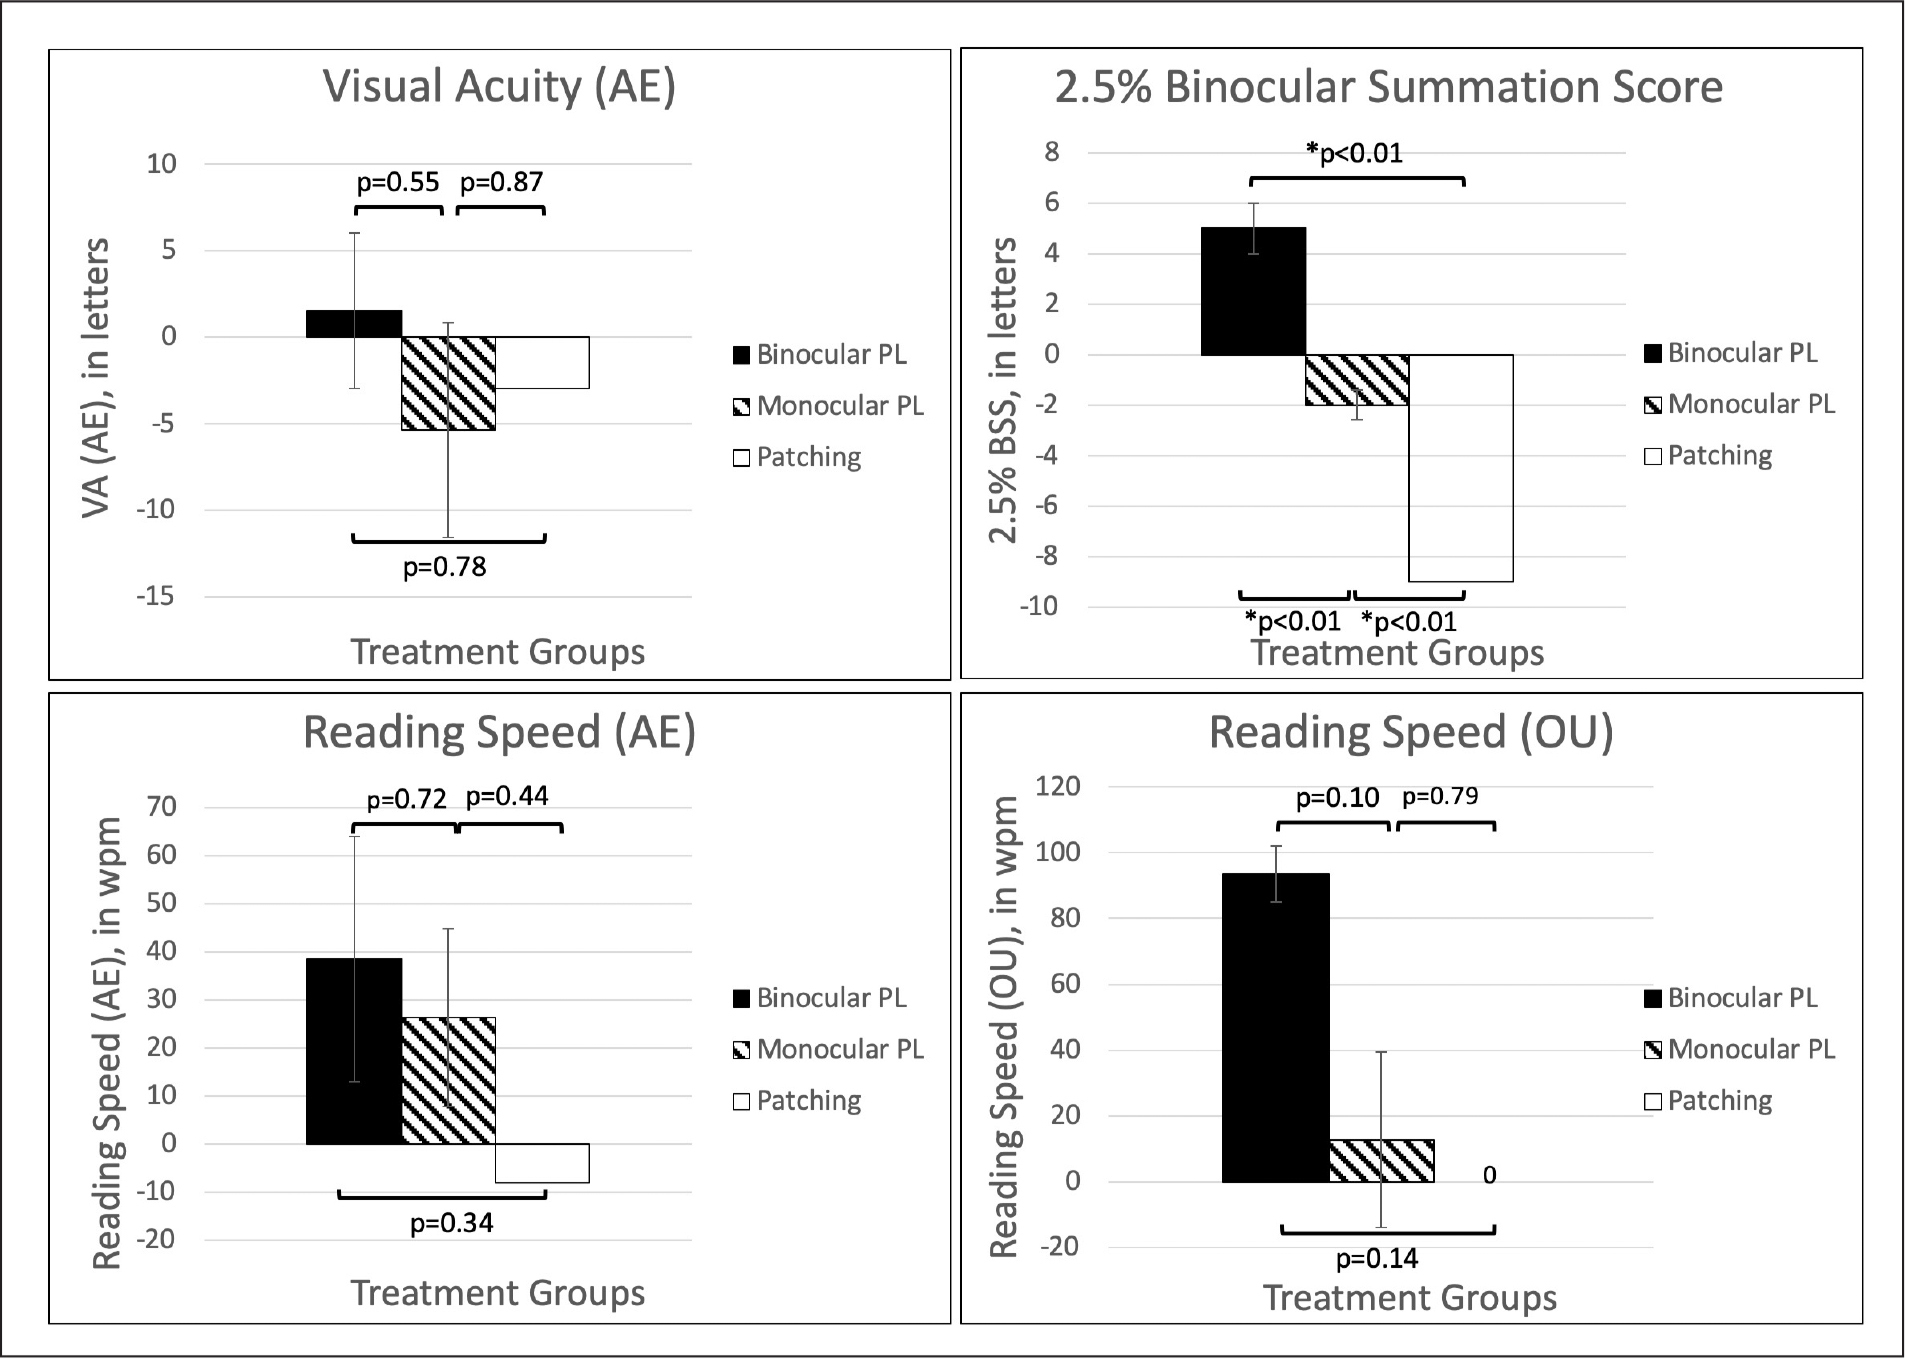 Visual function in good compliance group. Change in visual acuity (VA), binocular summation score (BSS), and reading speed (both eyes [OU], amblyopic eye [AE]) with 8 weeks of treatment (binocular perceptual learning [2], monocular perceptual learning [4], patching [1]) in the good compliance group. Error bars show mean ± spherical equivalent (SE). The only variable that significantly varied with treatment group was BSS (ΔBSS = 5, −2, and −9 letters for binocular perceptual learning, monocular perceptual learning, and patching, respectively).